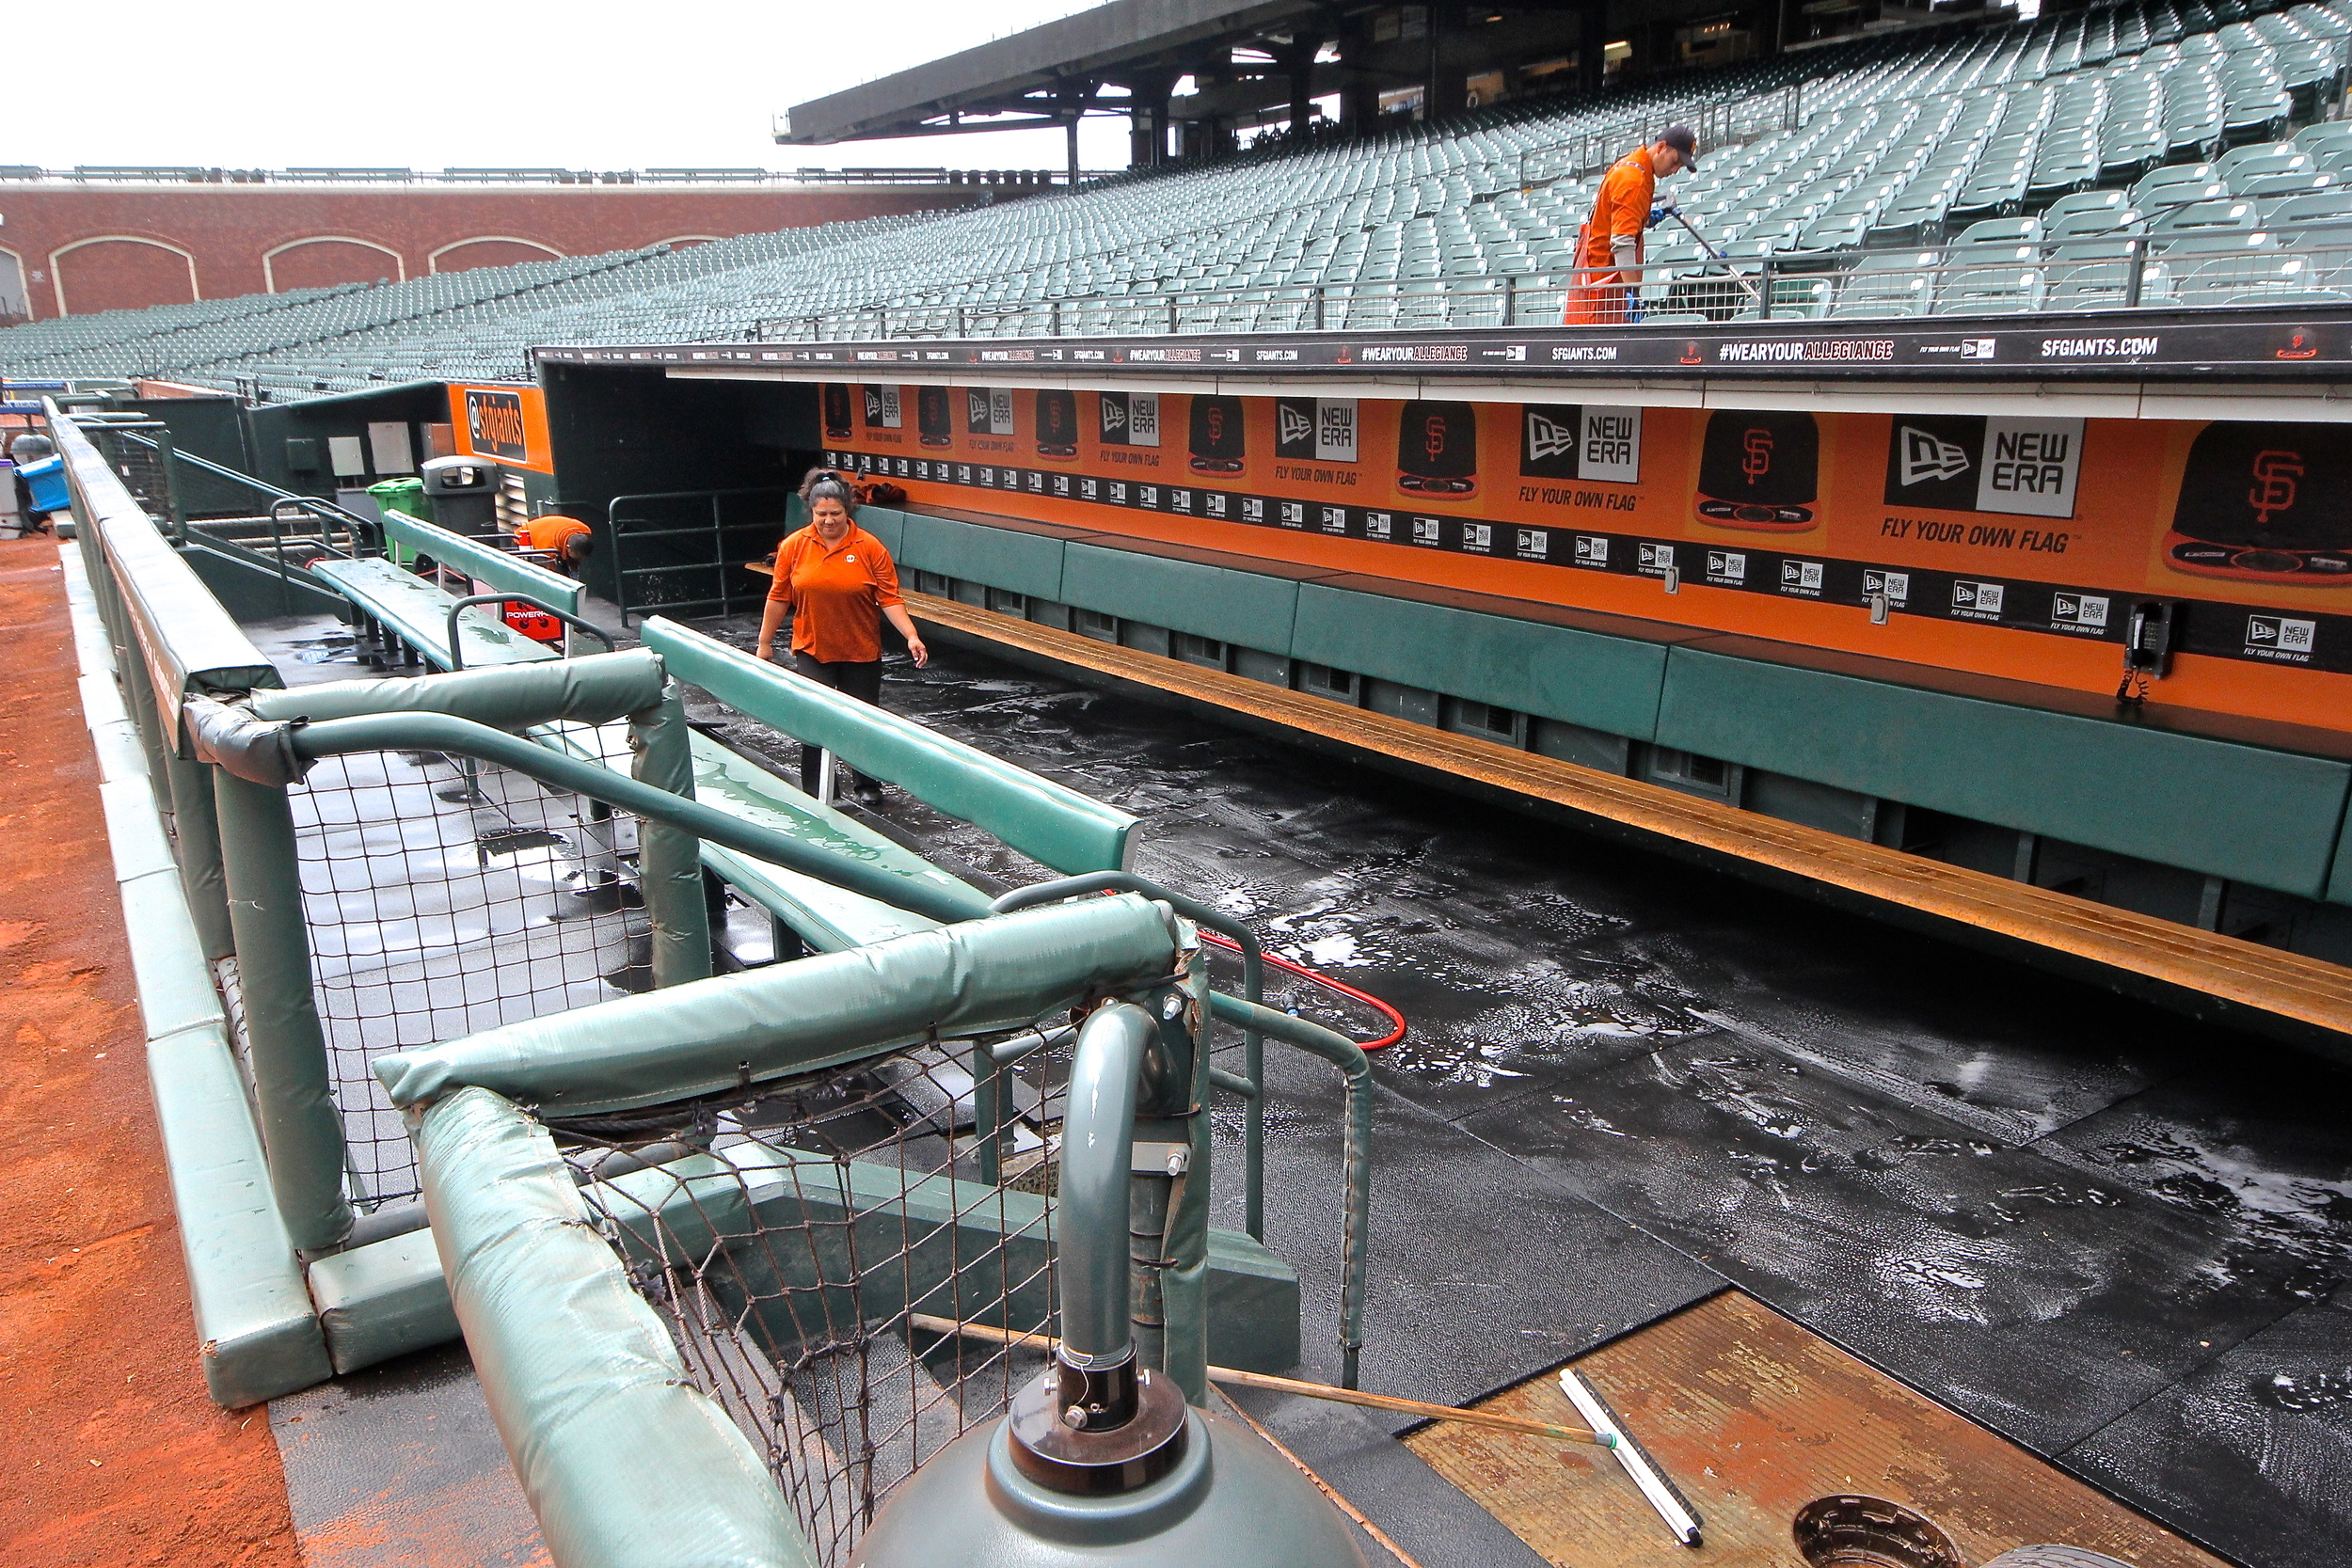 Cleaning the dugout